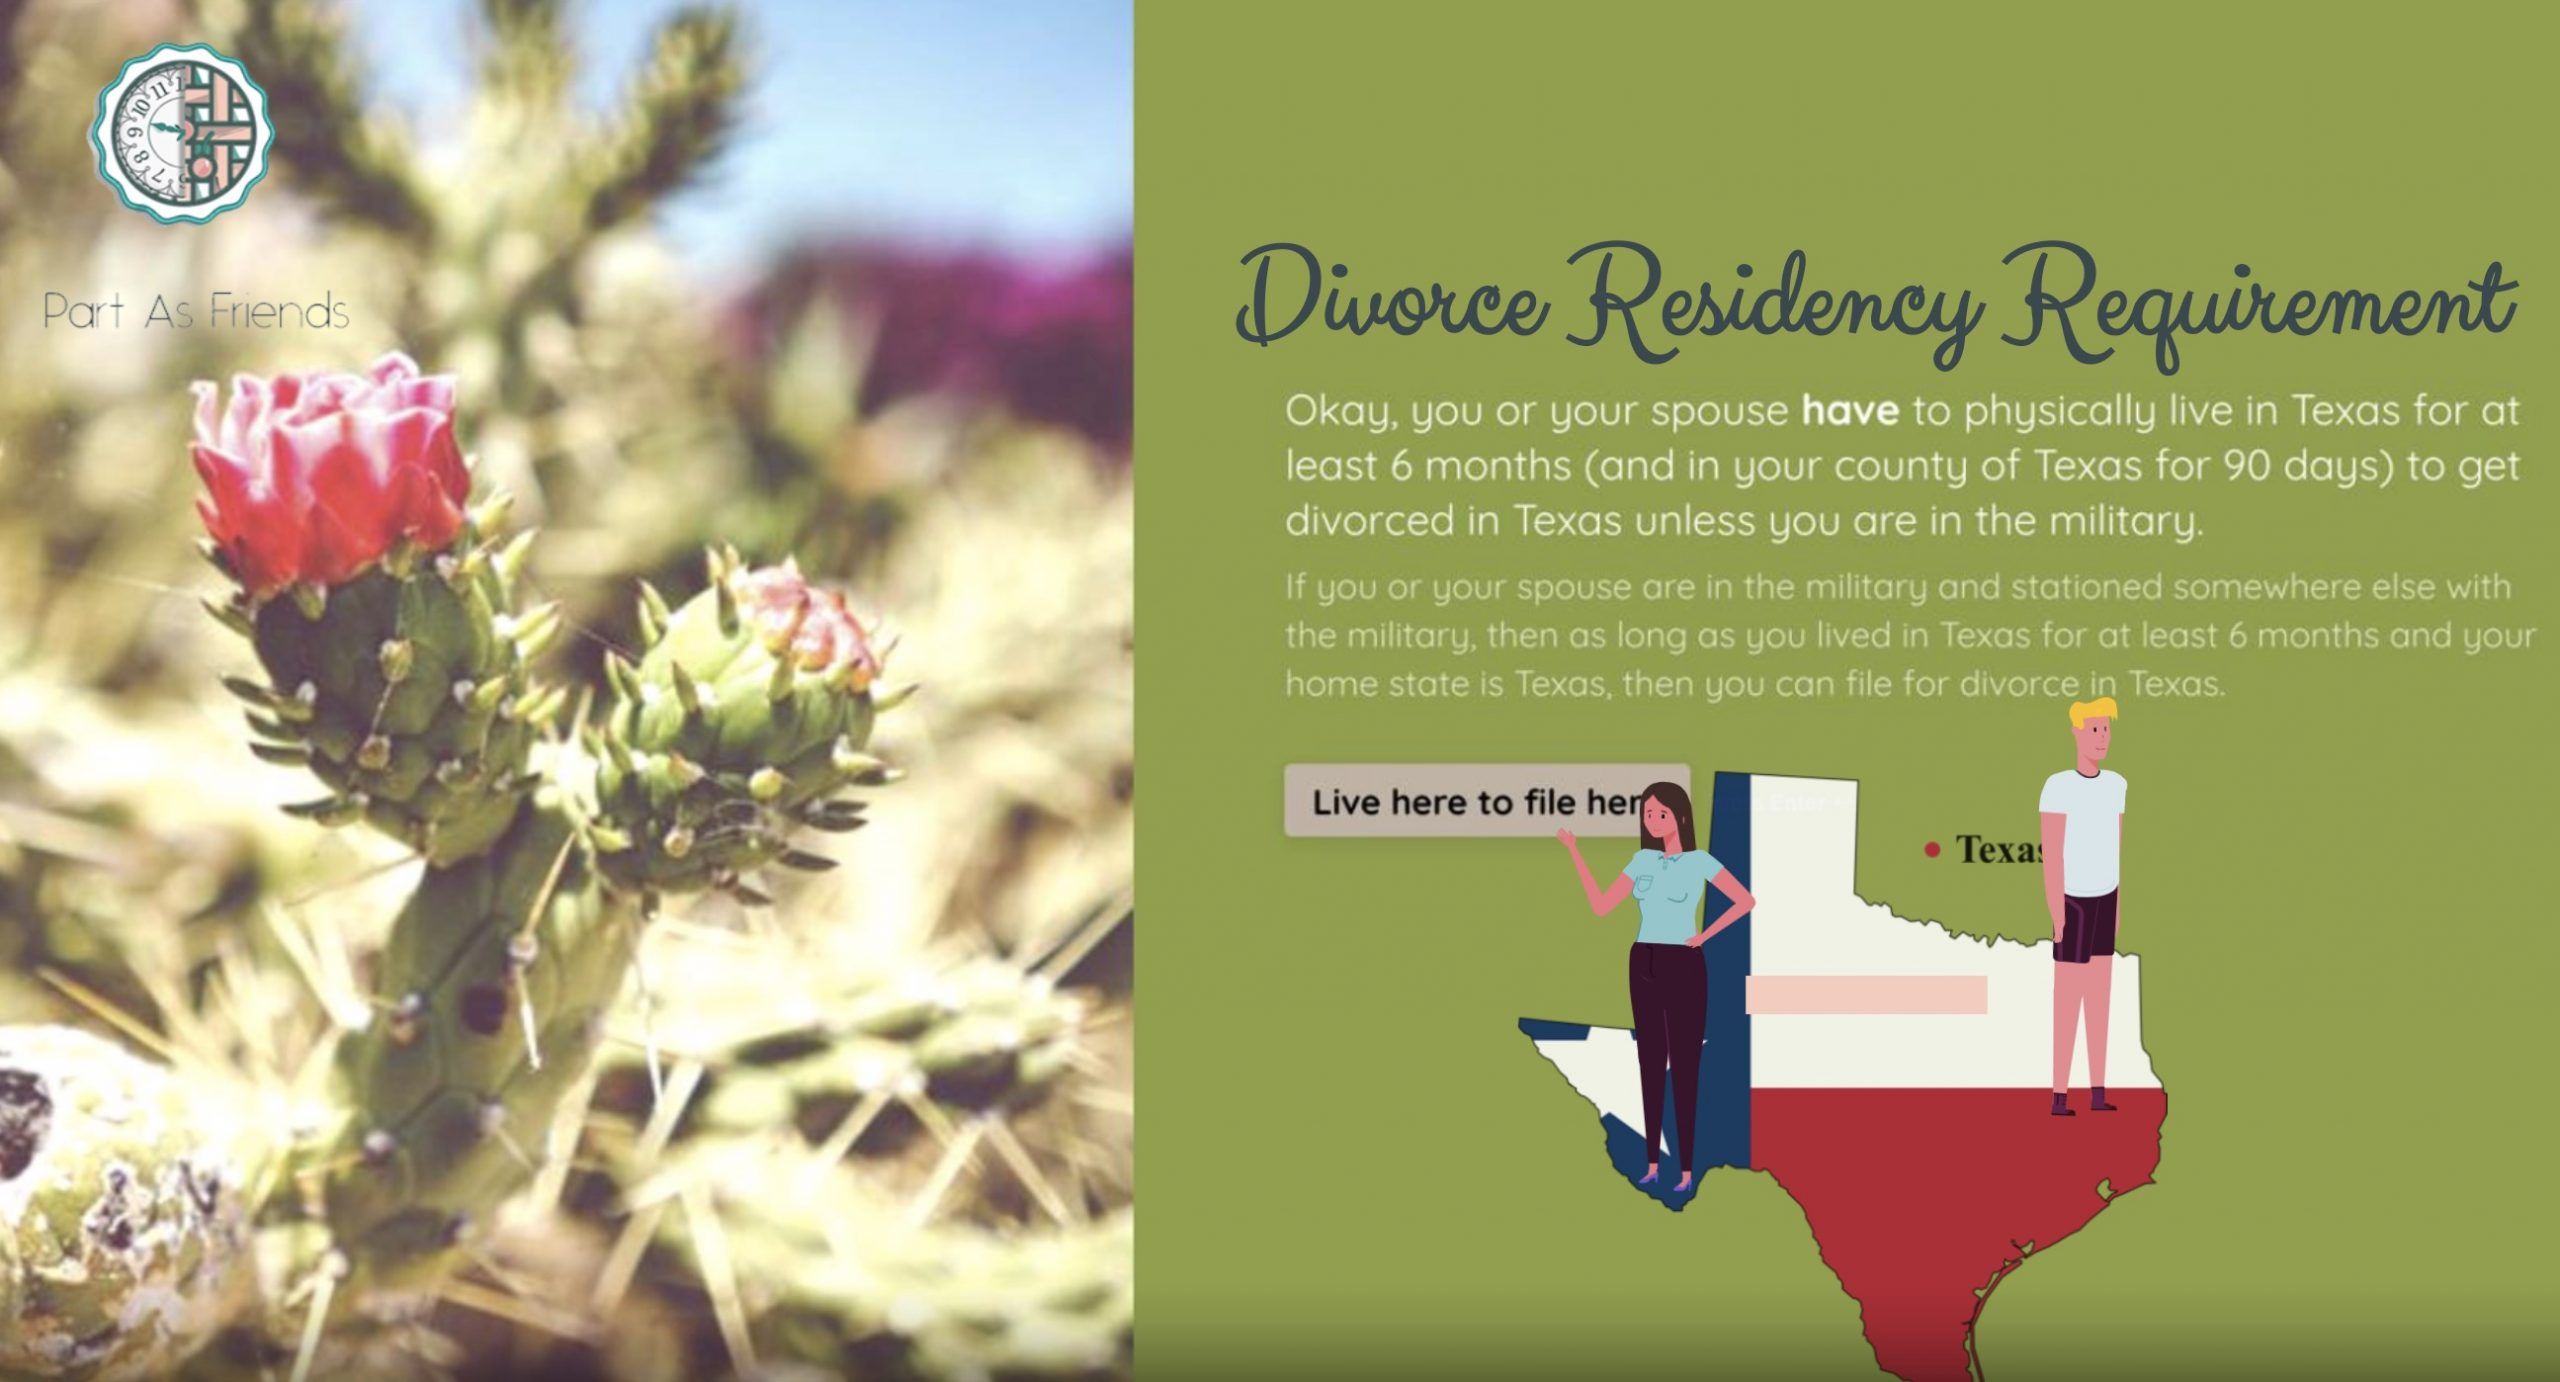 texas divorce residency requirement infographic